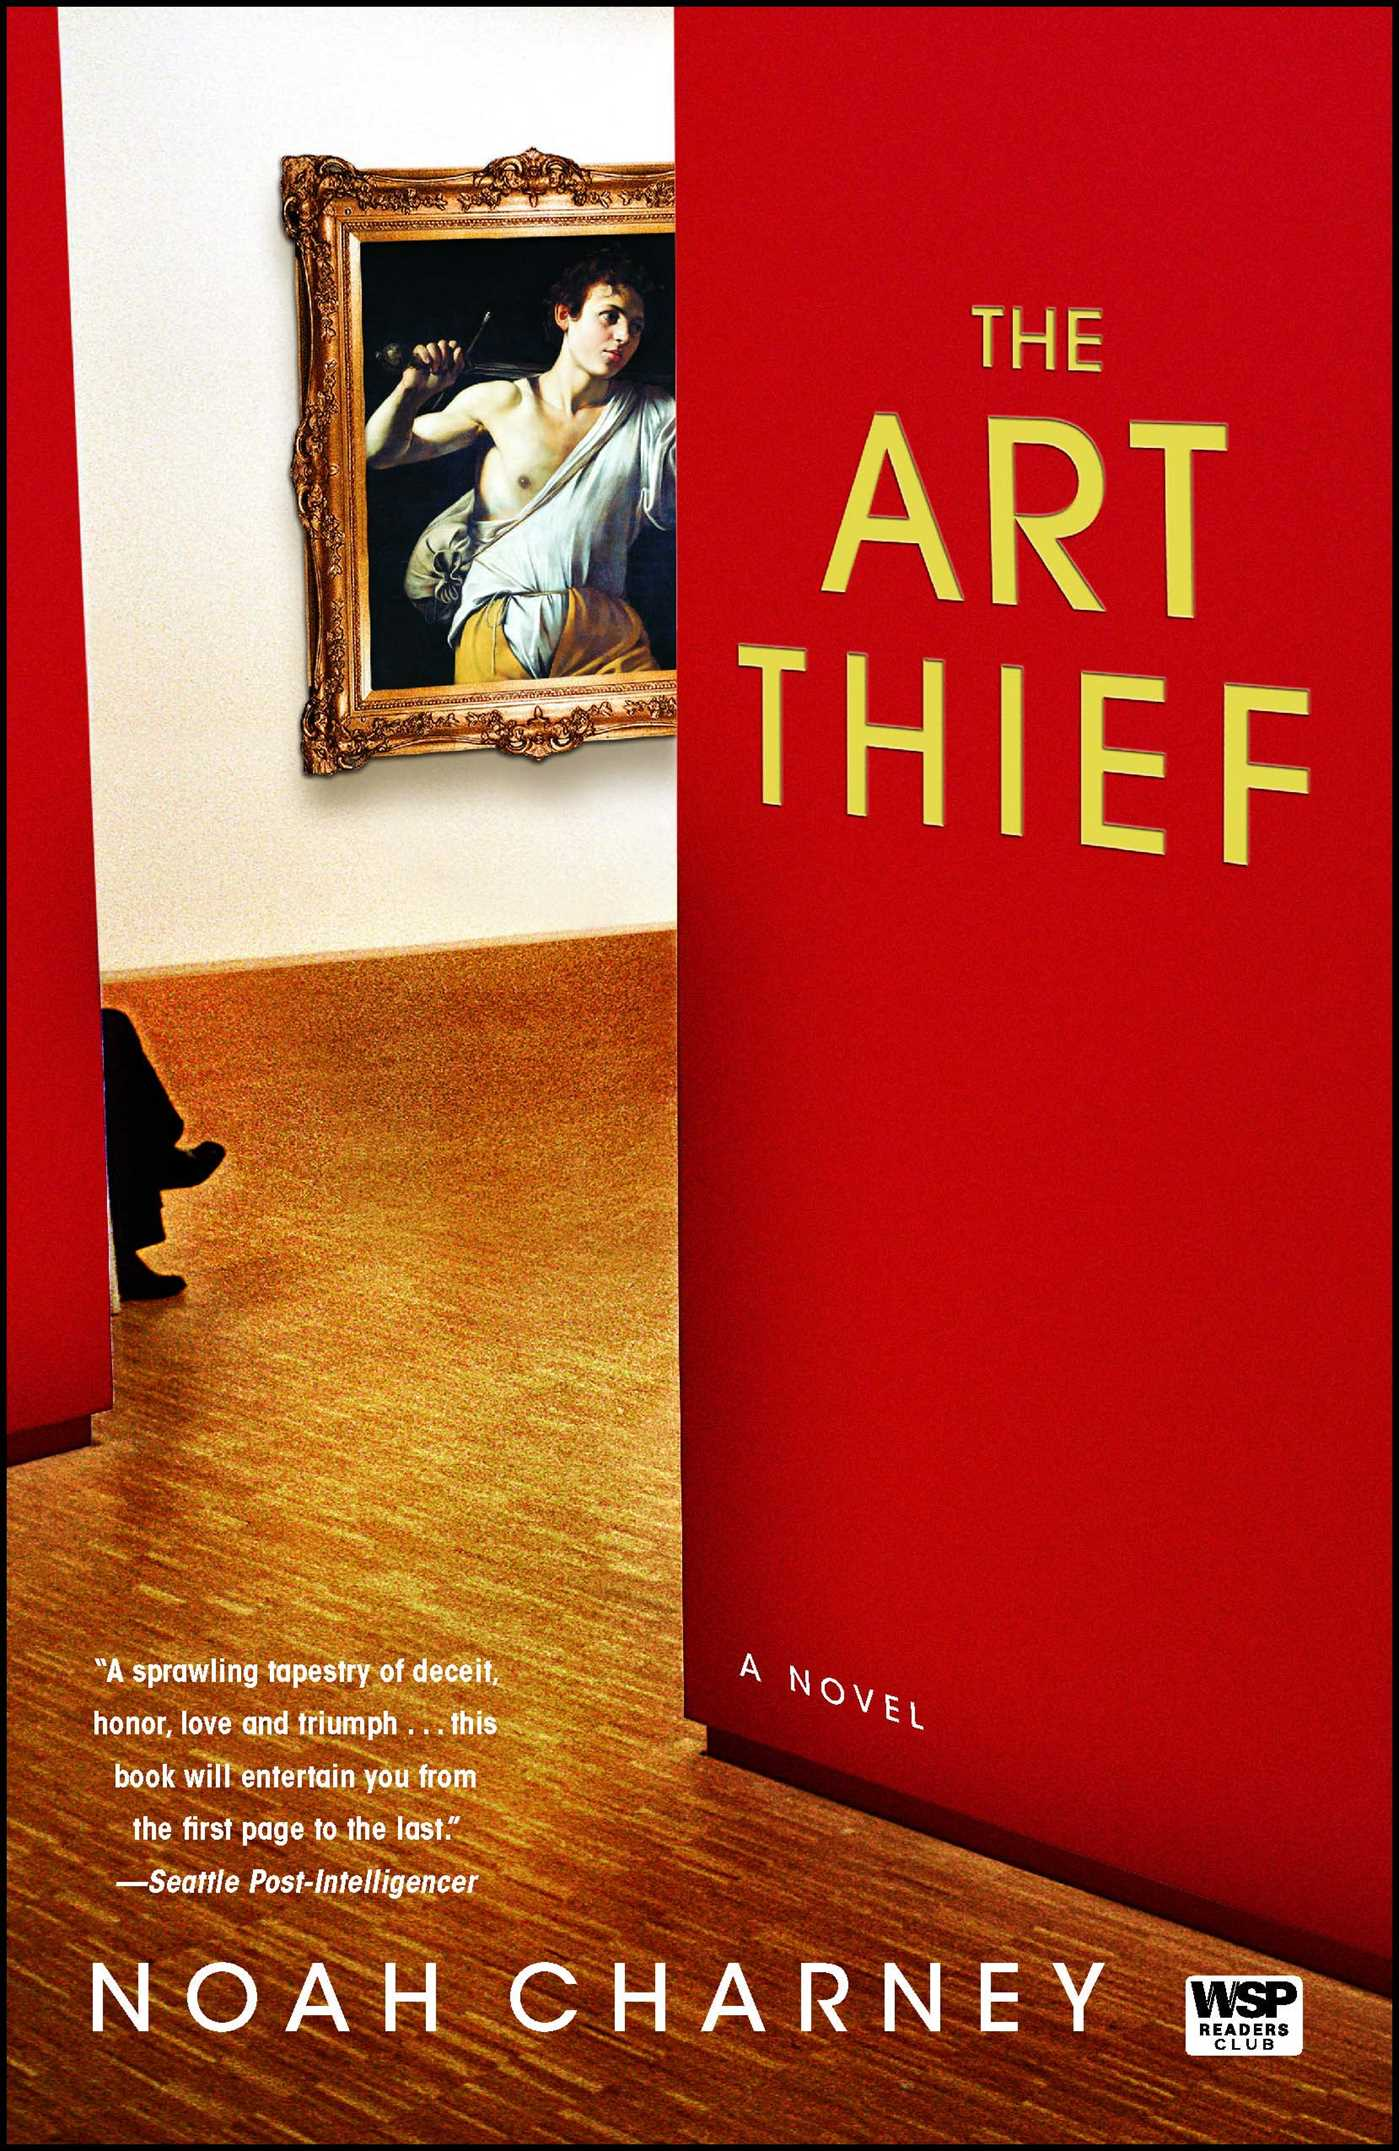 The art thief 9781416550310 hr